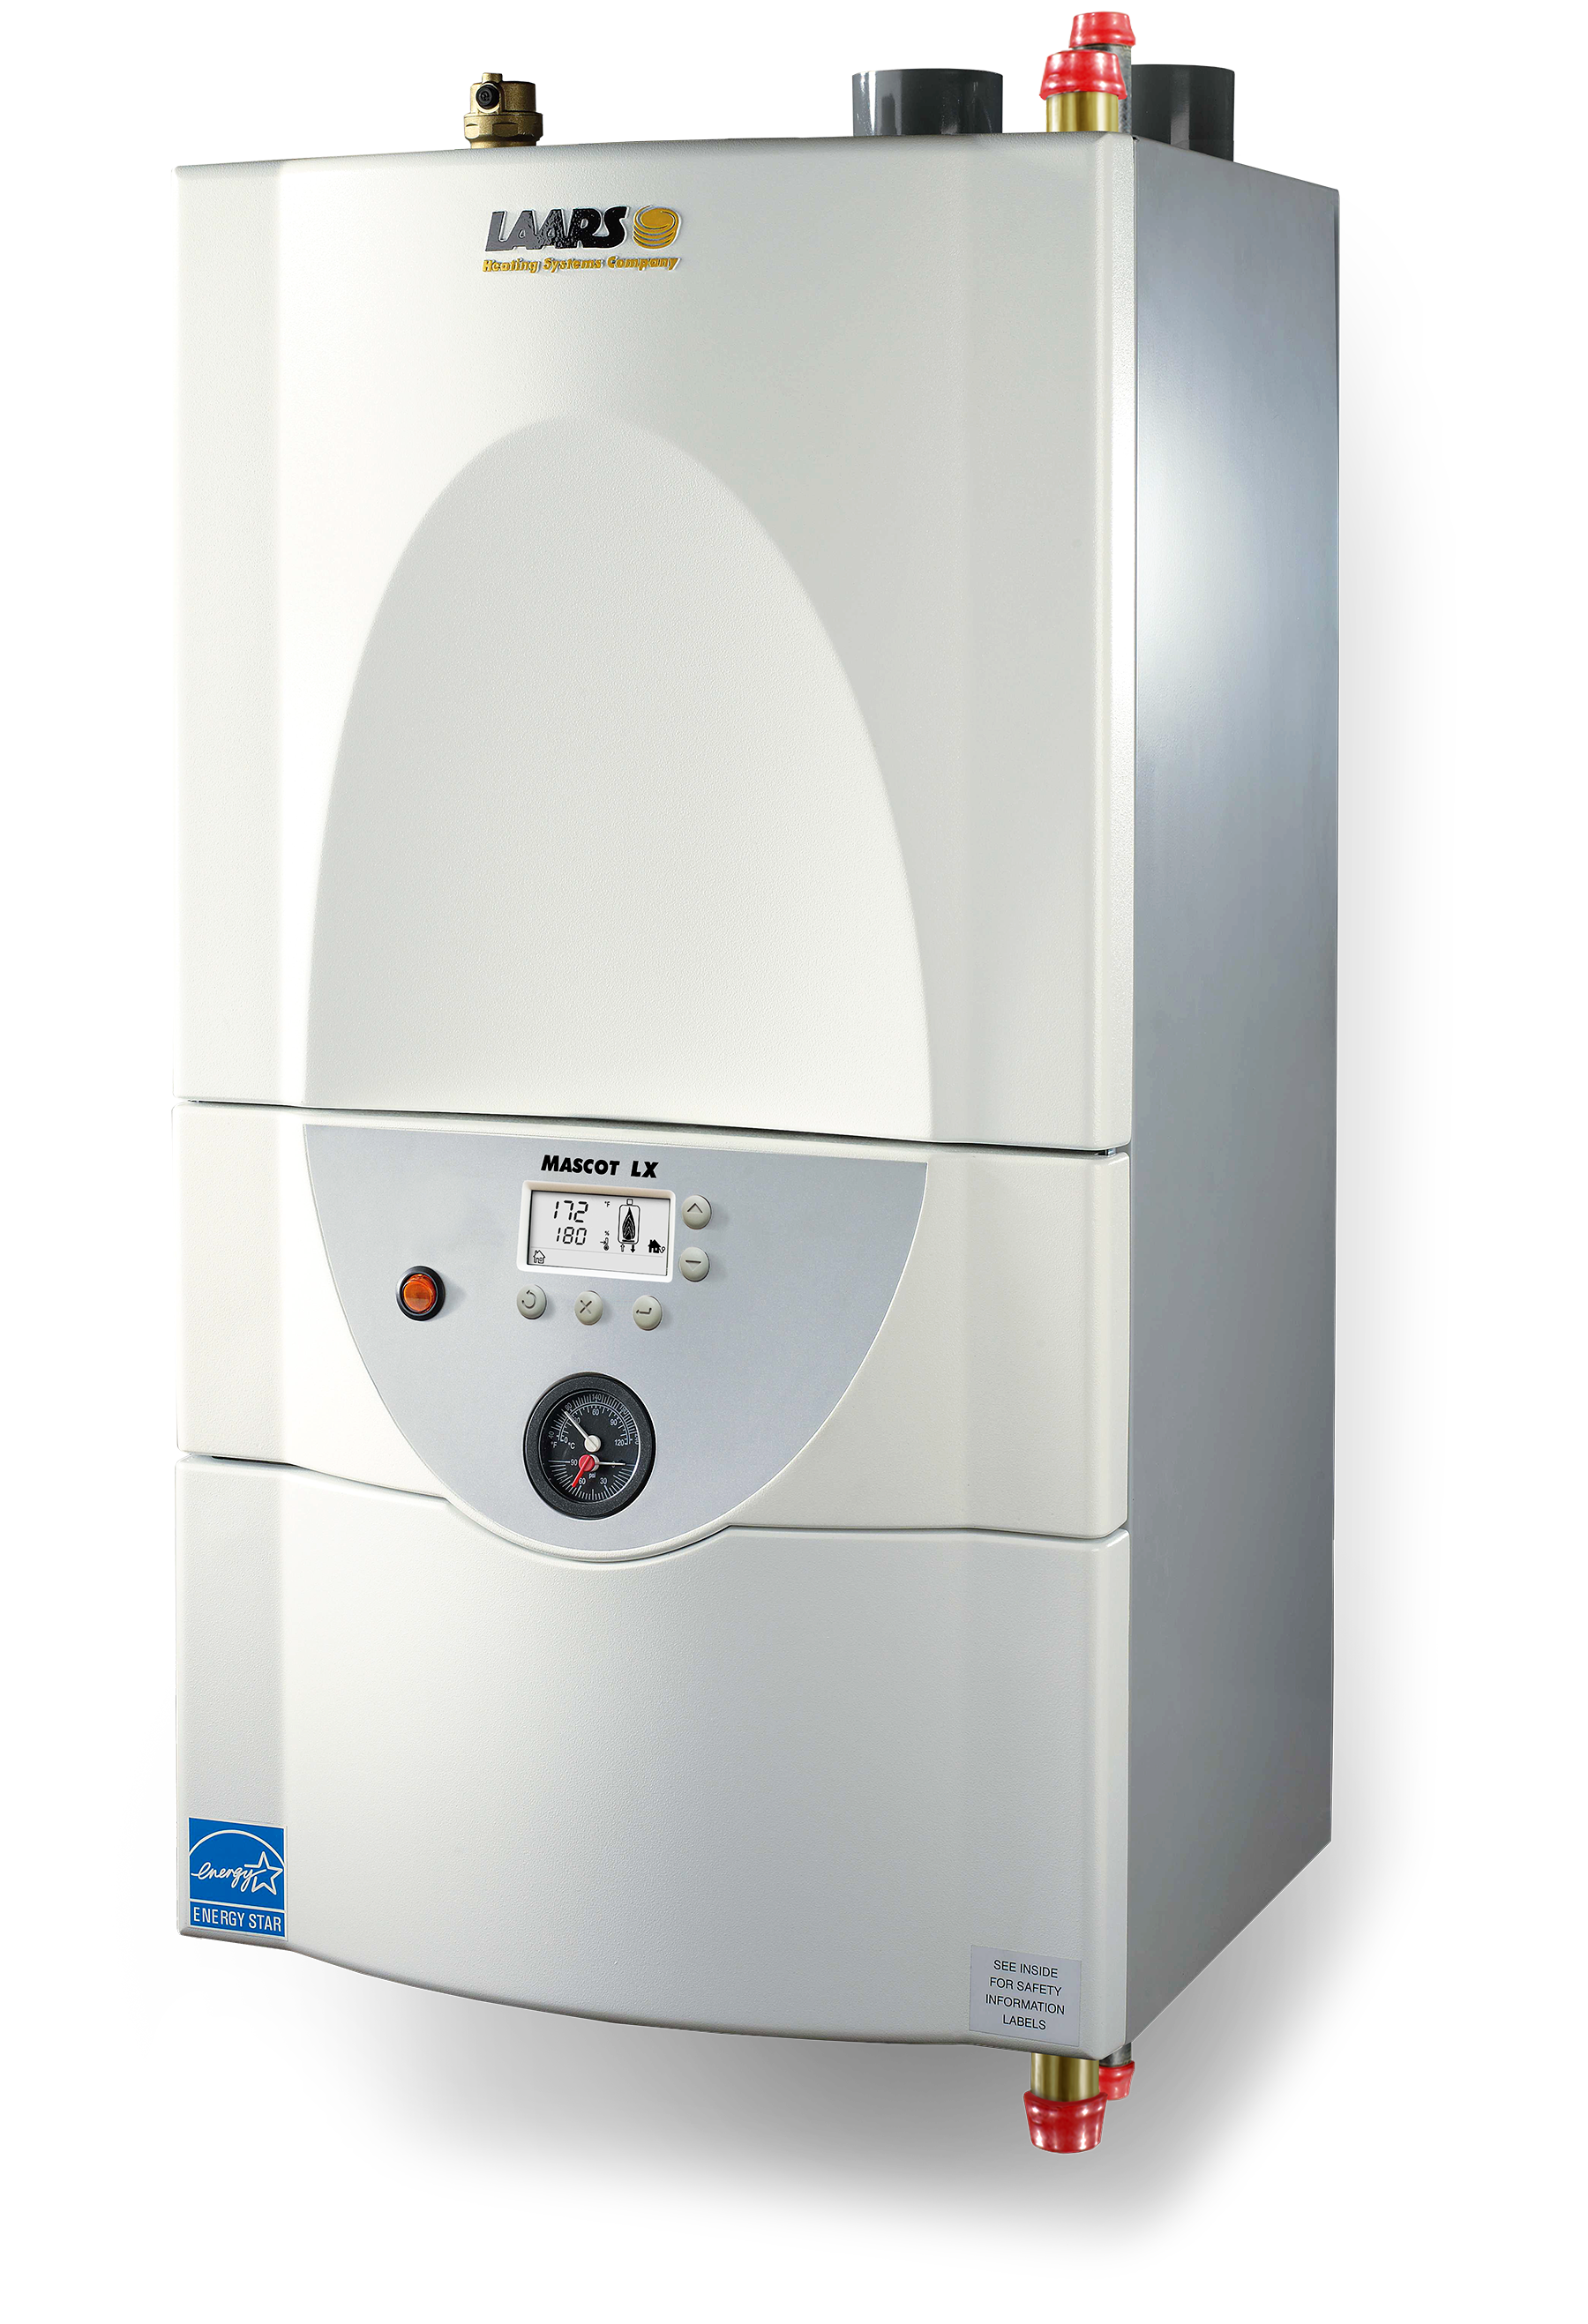 High-Efficiency Boiler | Wall Mounted Boiler | Mascot LX ...